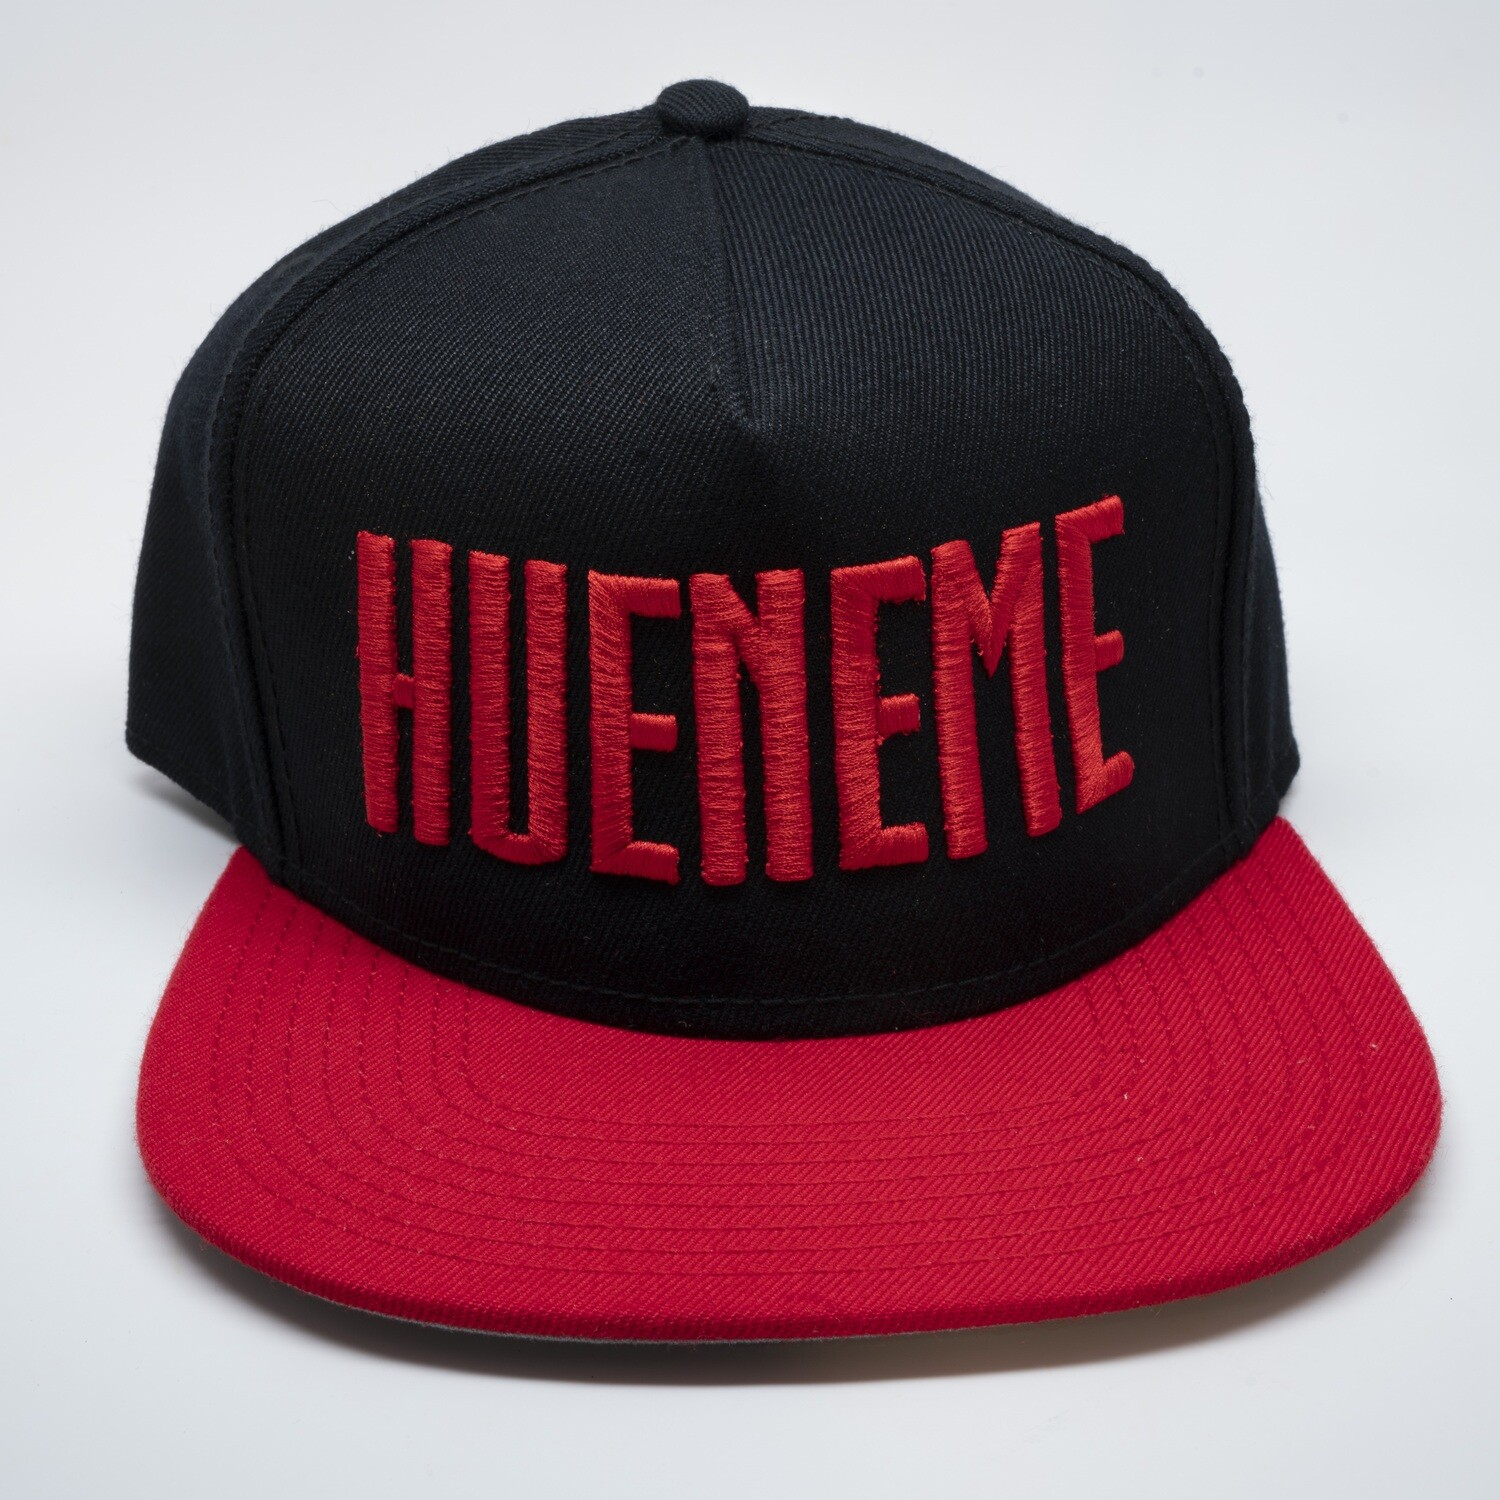 Hueneme Red and Black Block Snapback Hat